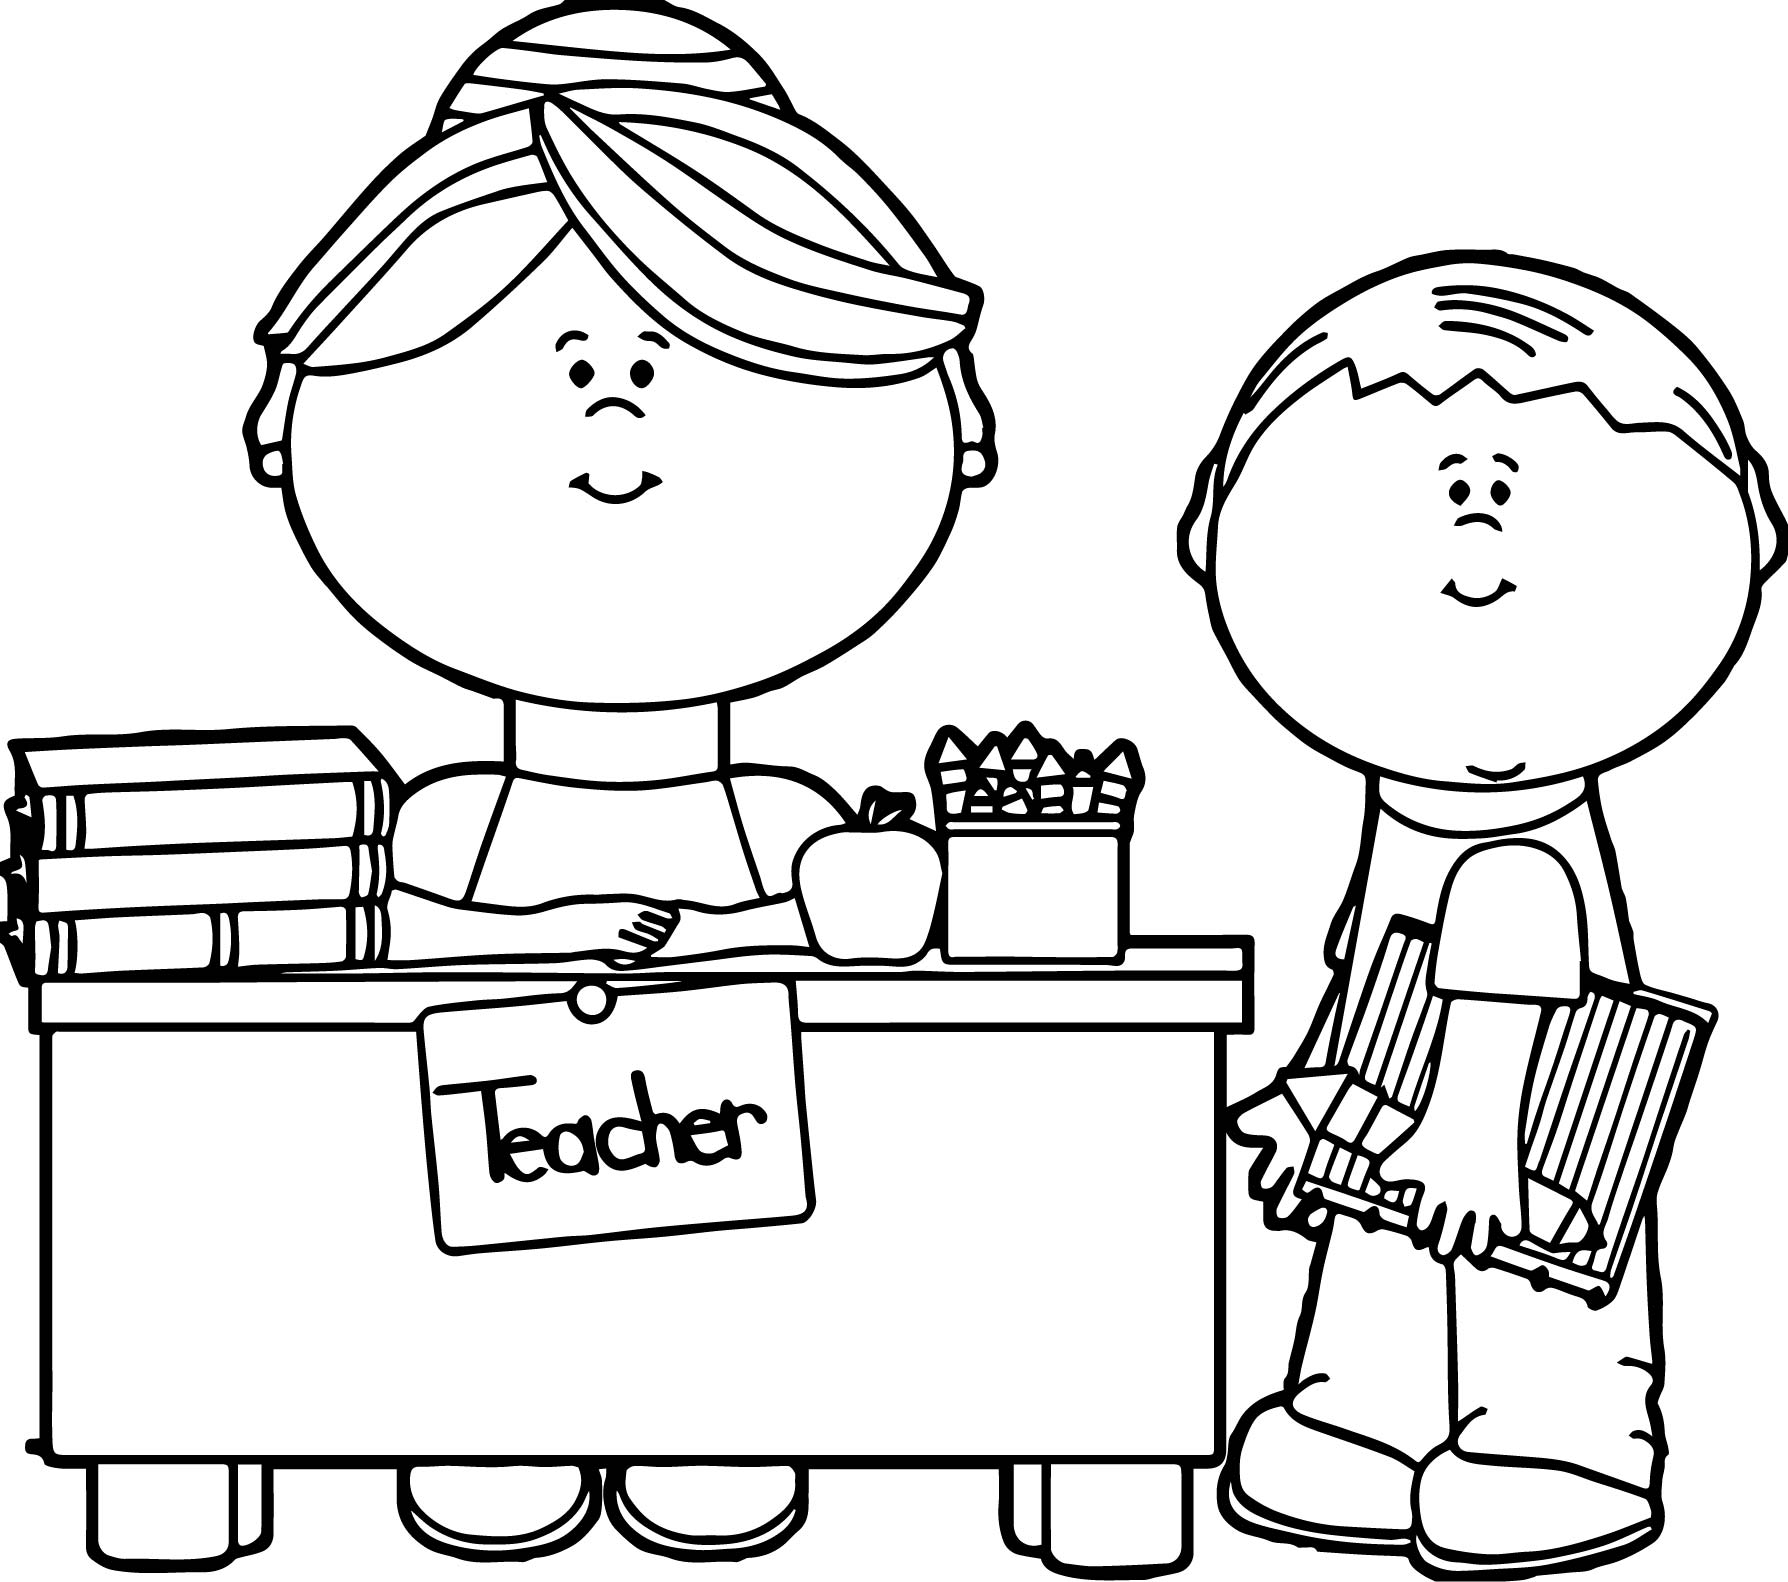 coloring book pages for educators - photo#6